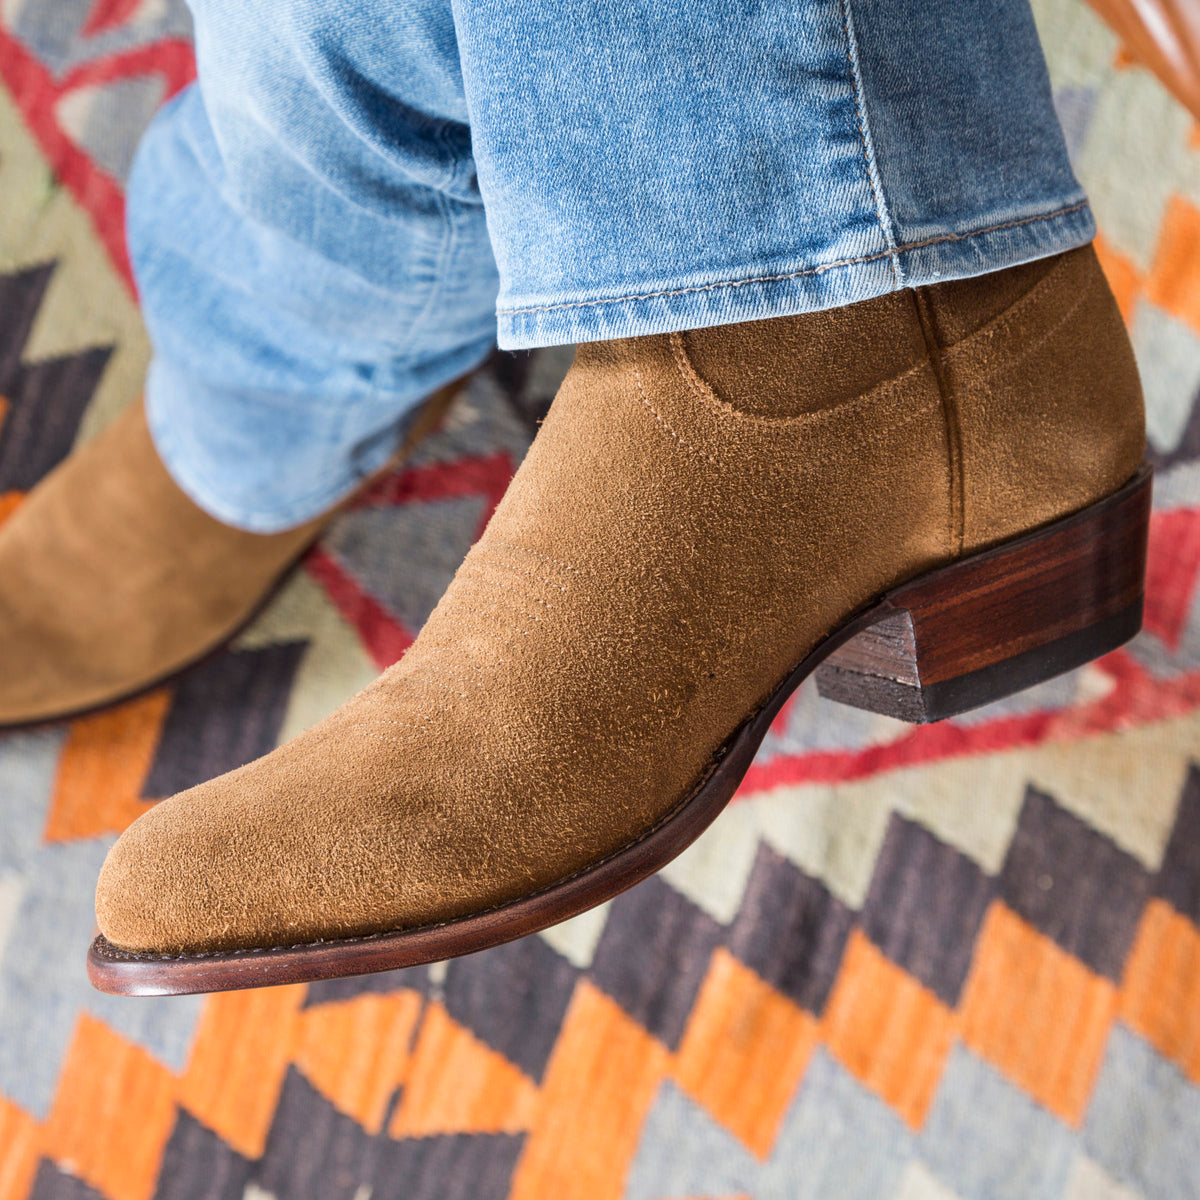 The Johnny A Handmade Waterproof Suede Cowboy Boot